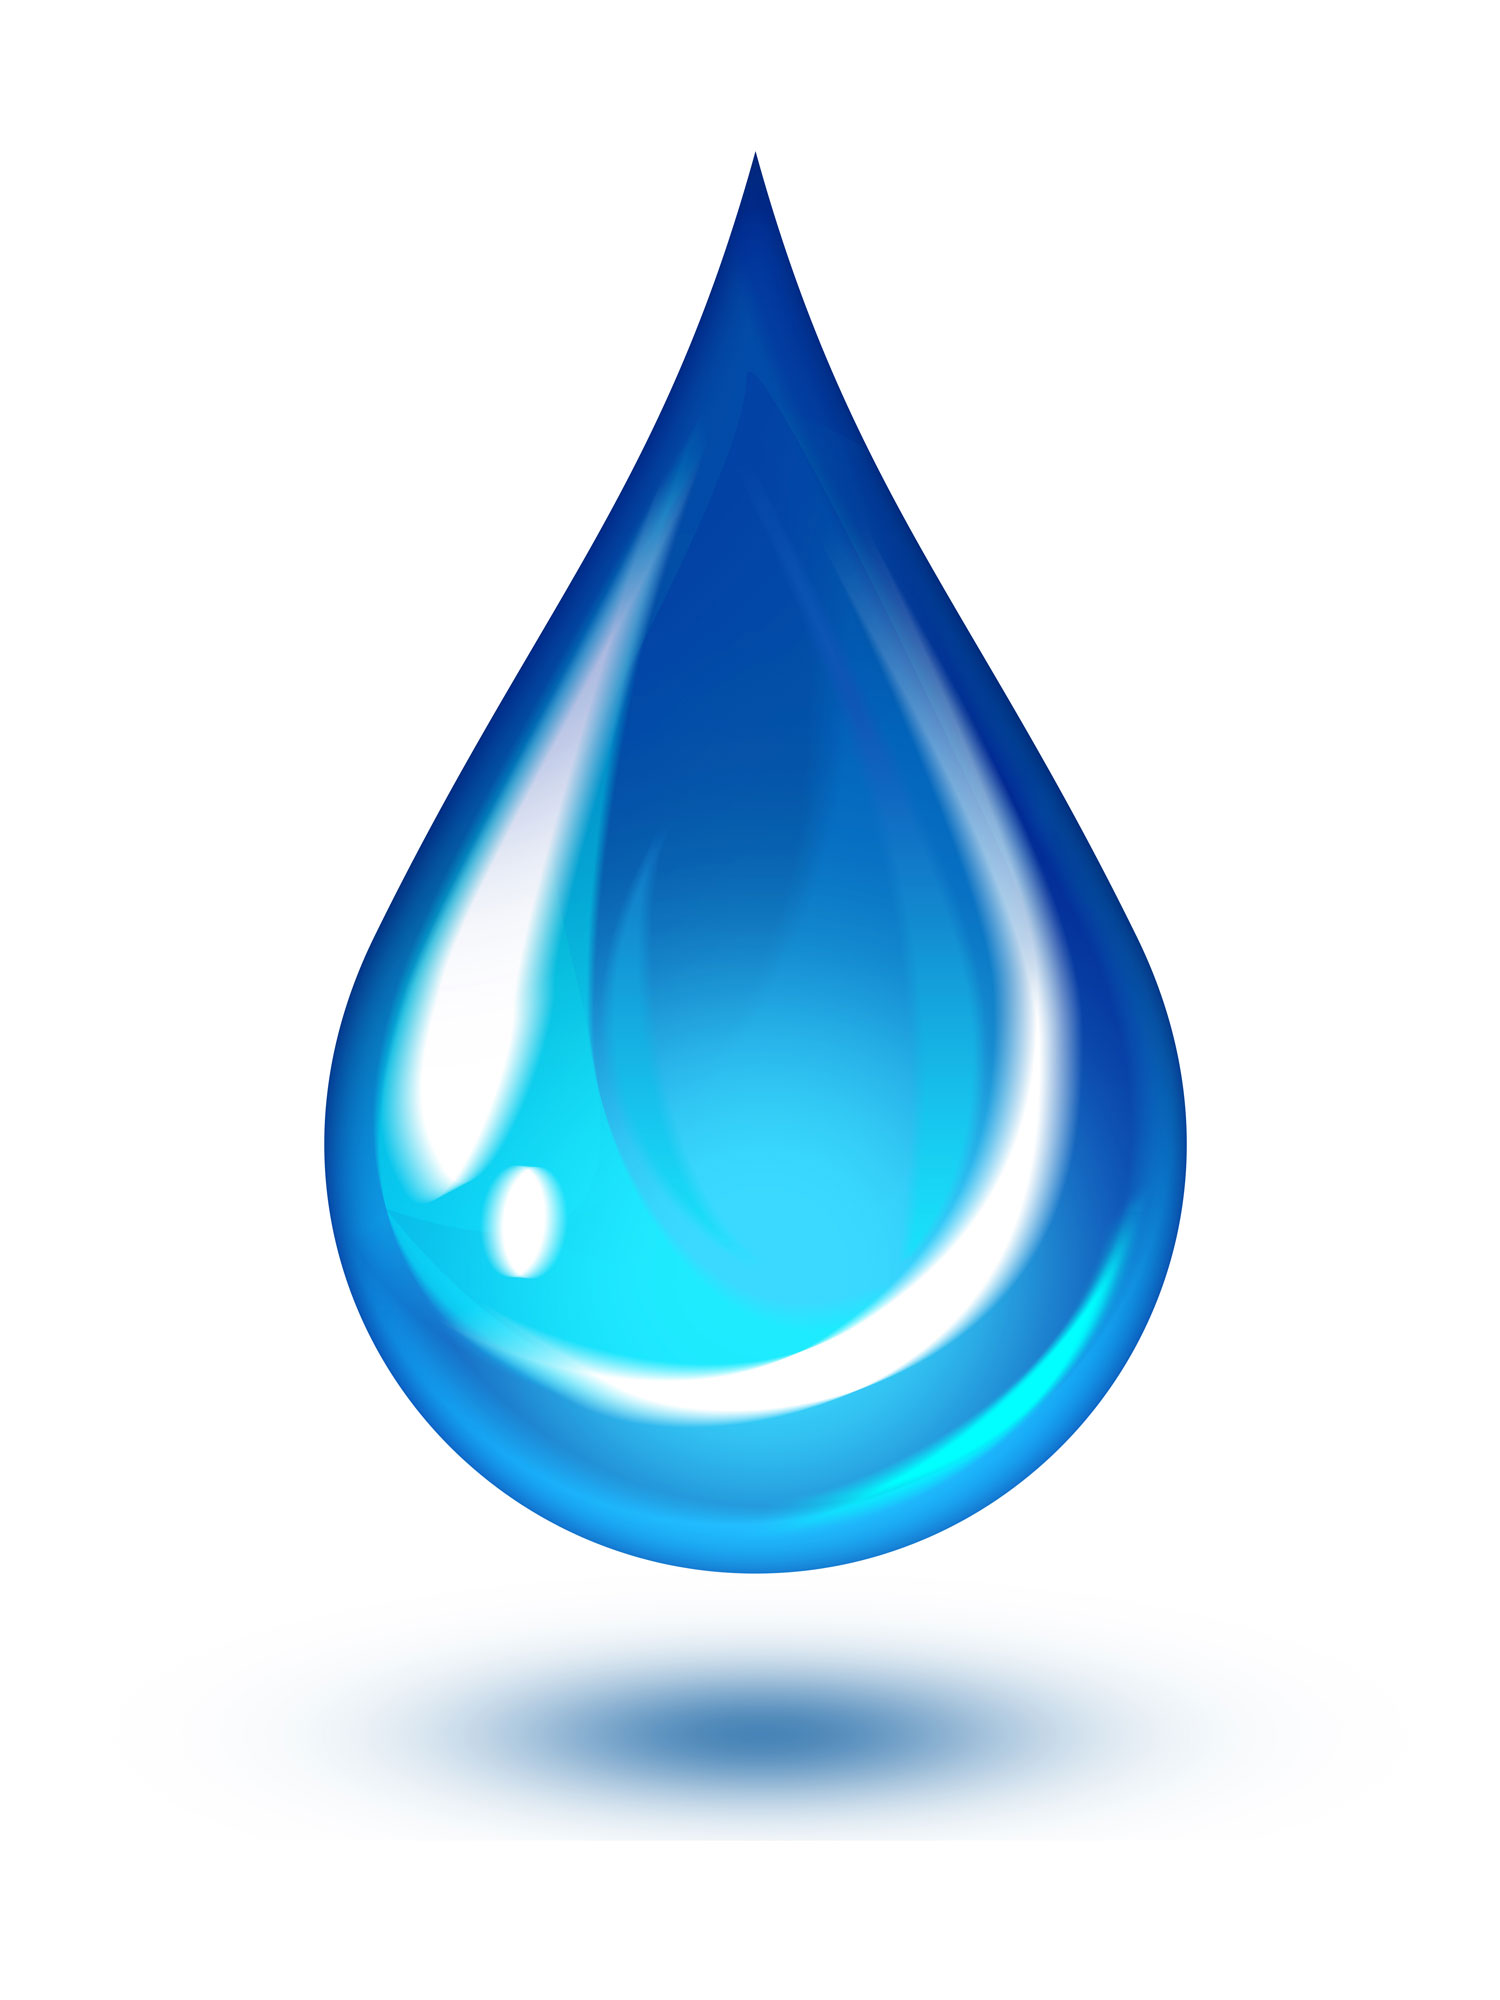 Waterdrop clipart daily life clipart #3